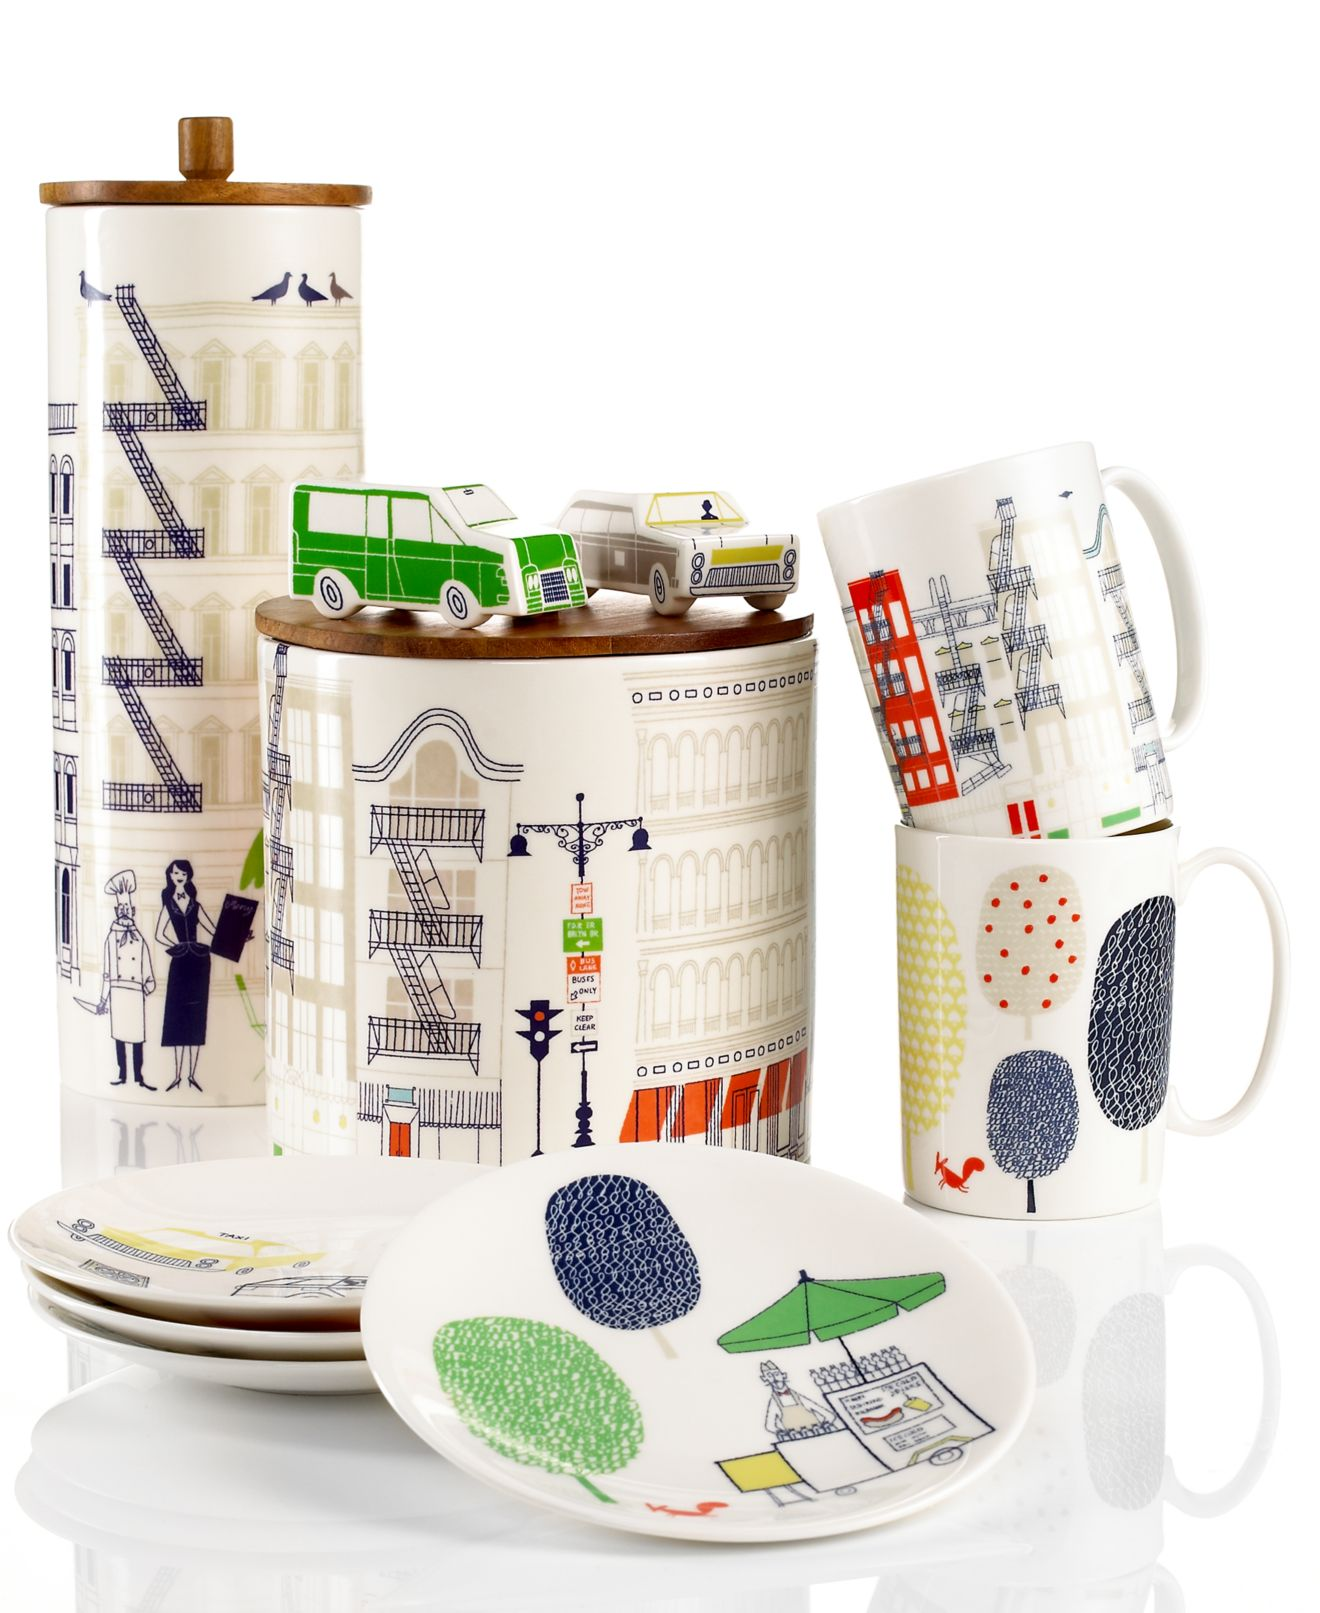 kate spade new york dinnerware, hopscotch drive & about town